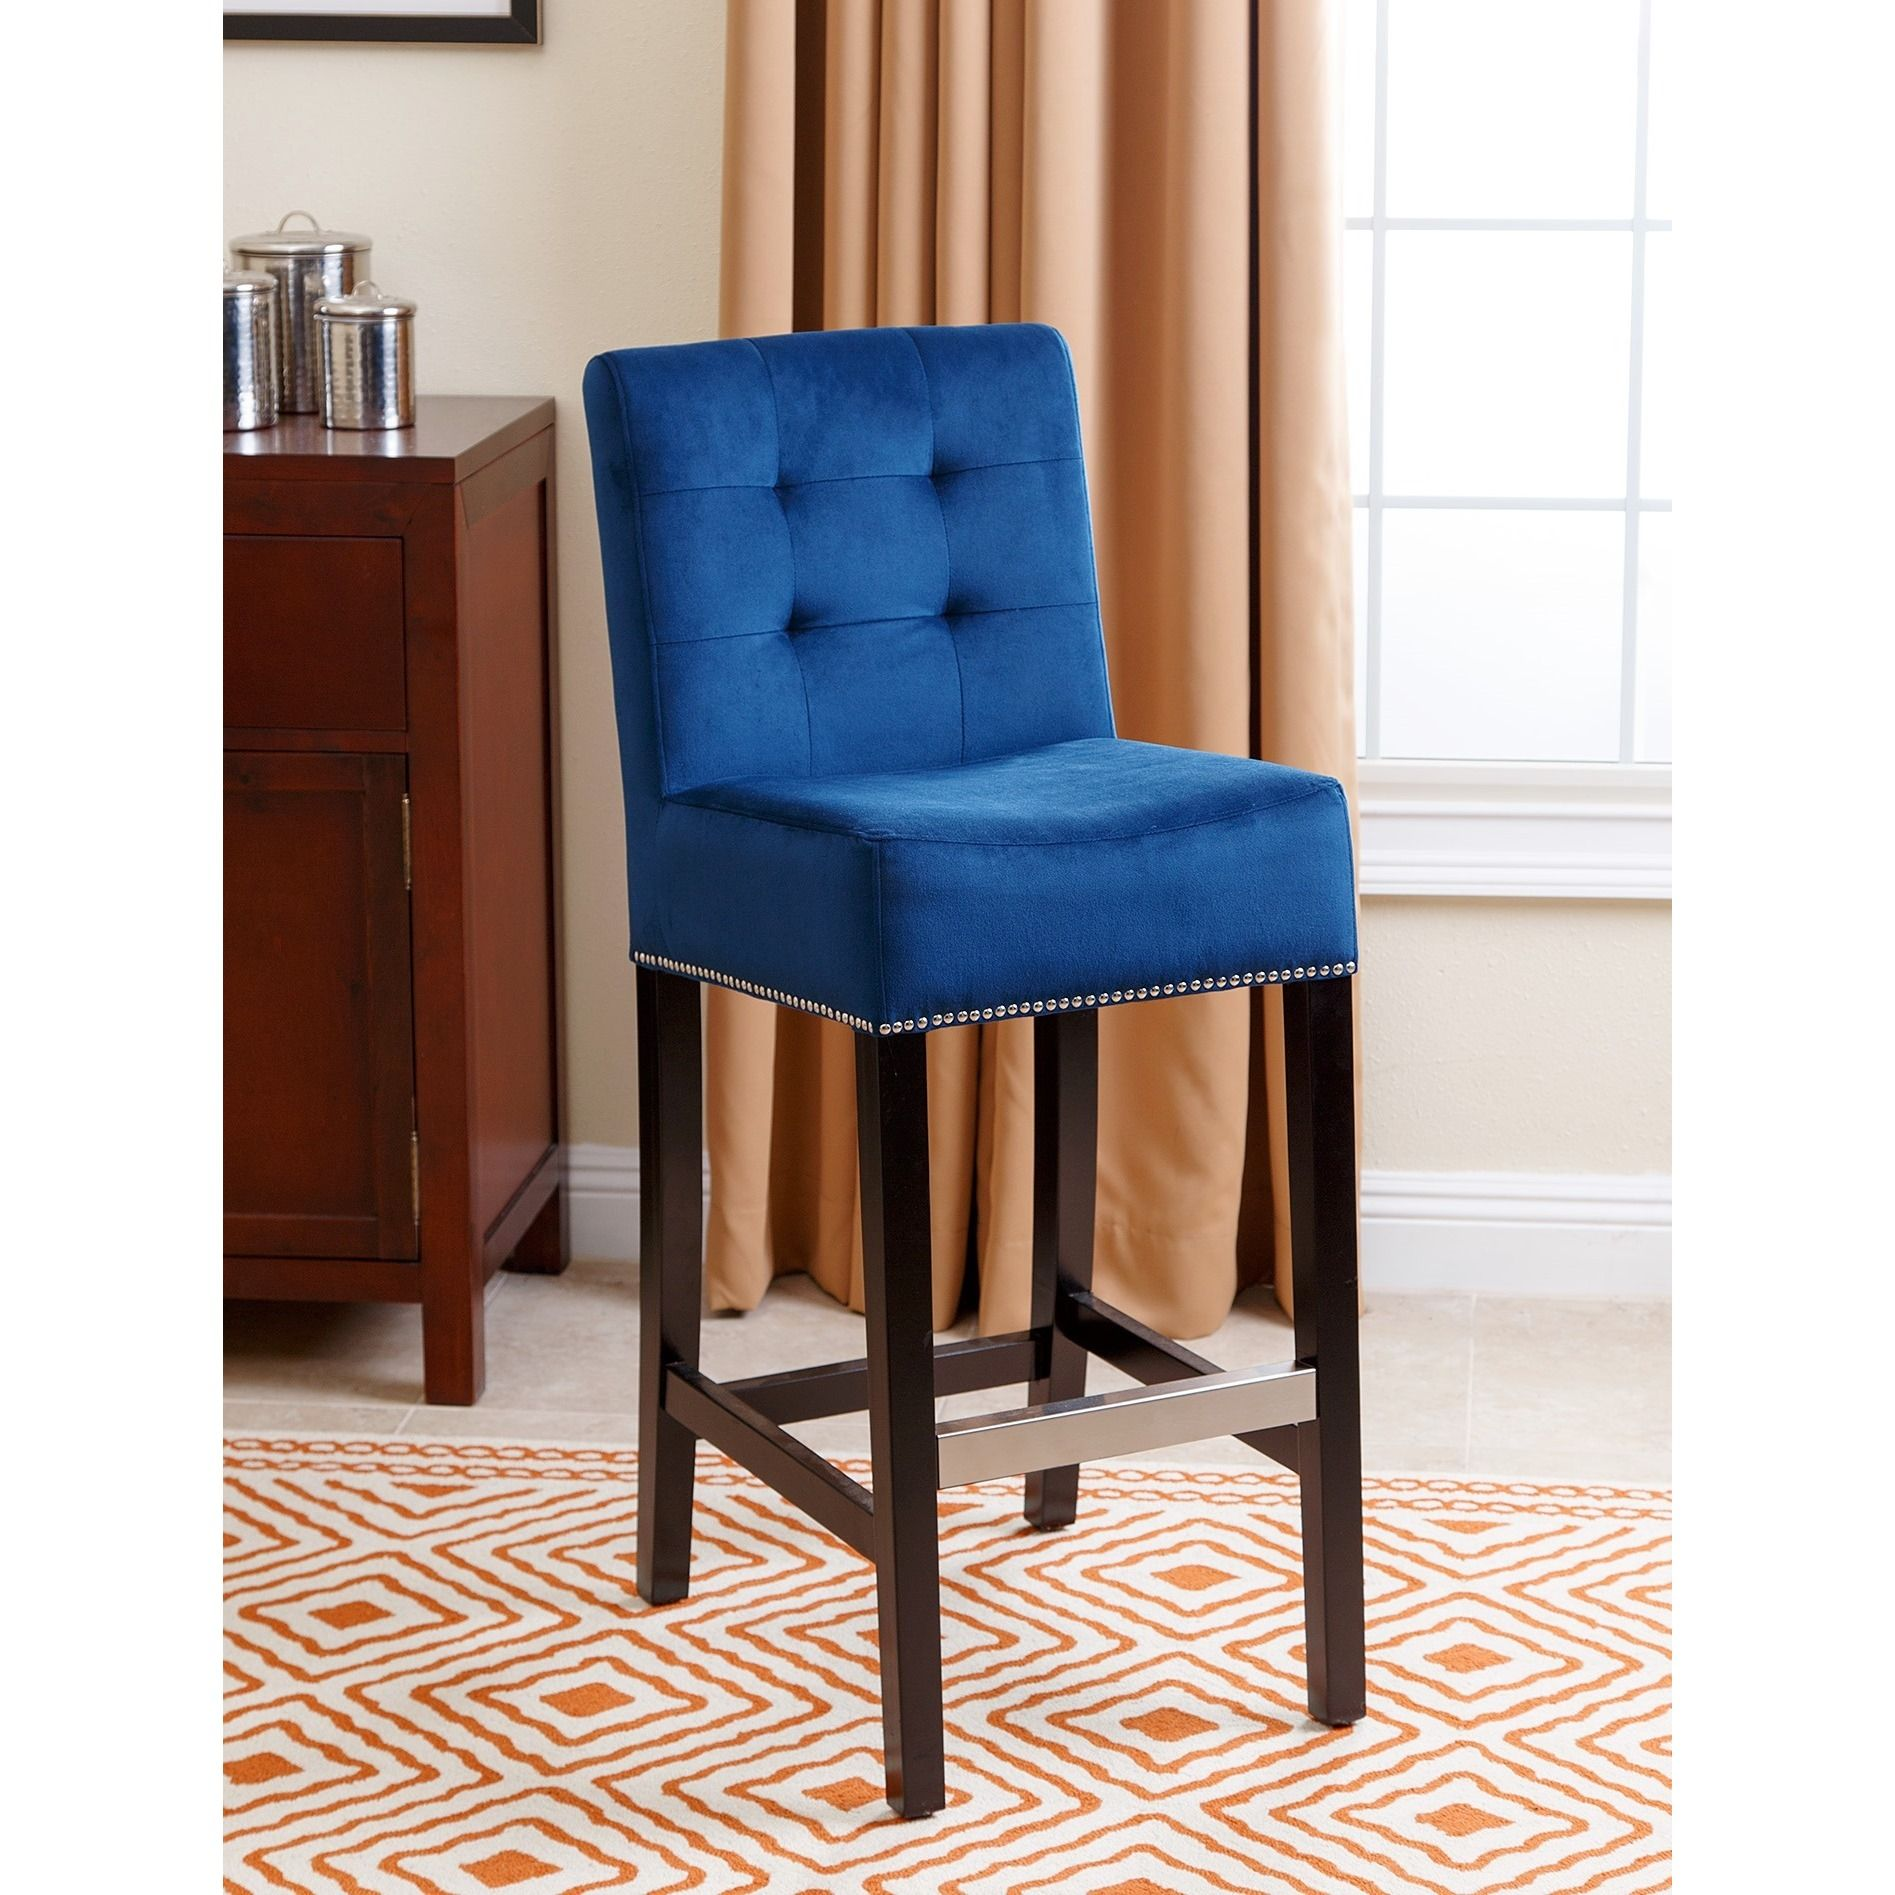 Abbyson Masimo Navy Blue Velvet Bar Stool Navy Blue Felt